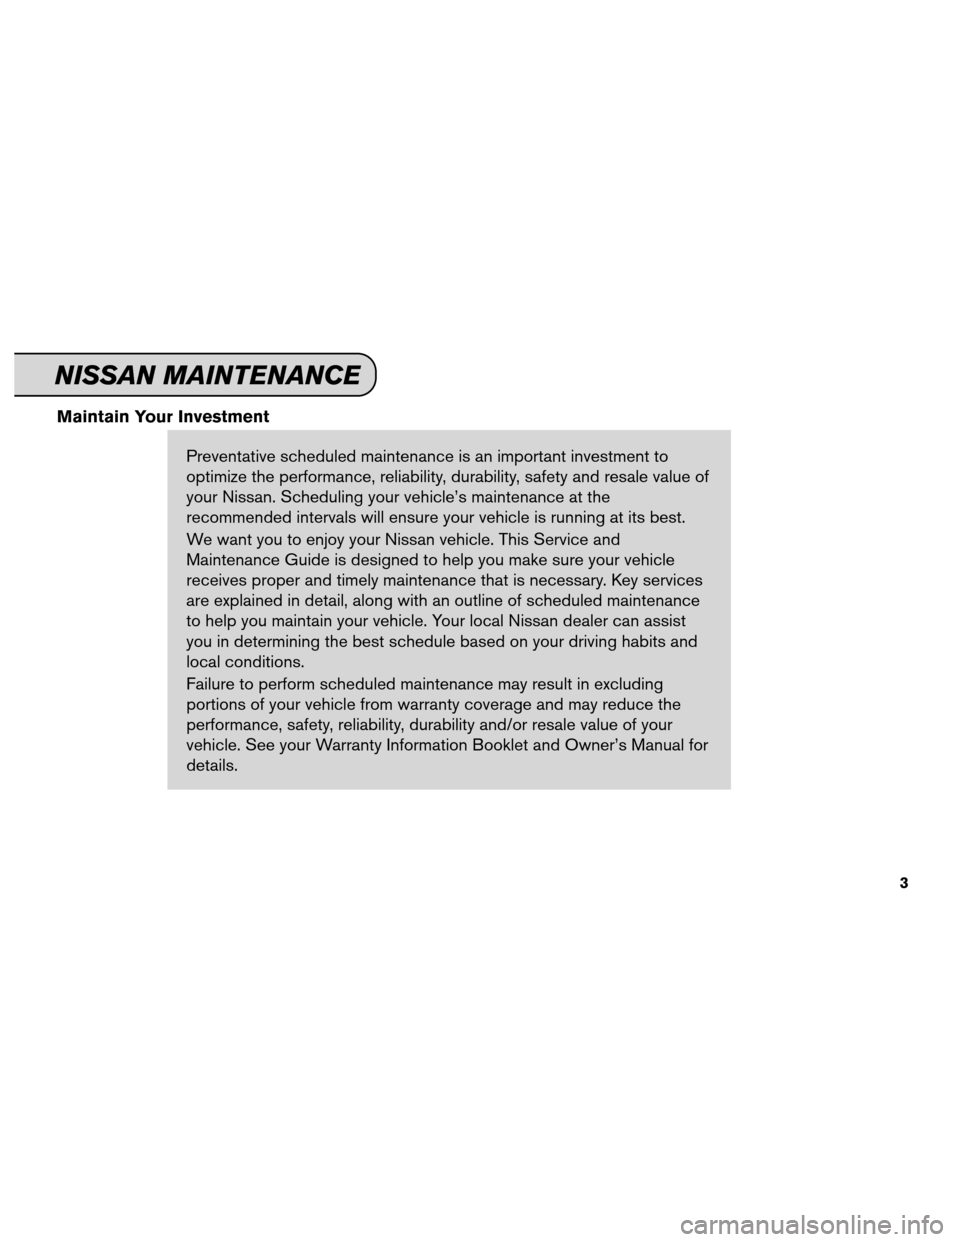 NISSAN MURANO 2013 2.G Service And Maintenance Guide Maintain Your InvestmentPreventative scheduled maintenance is an important investment to optimize the performance, reliability, durability, safety and resale value of your Nissan. Scheduling your vehi